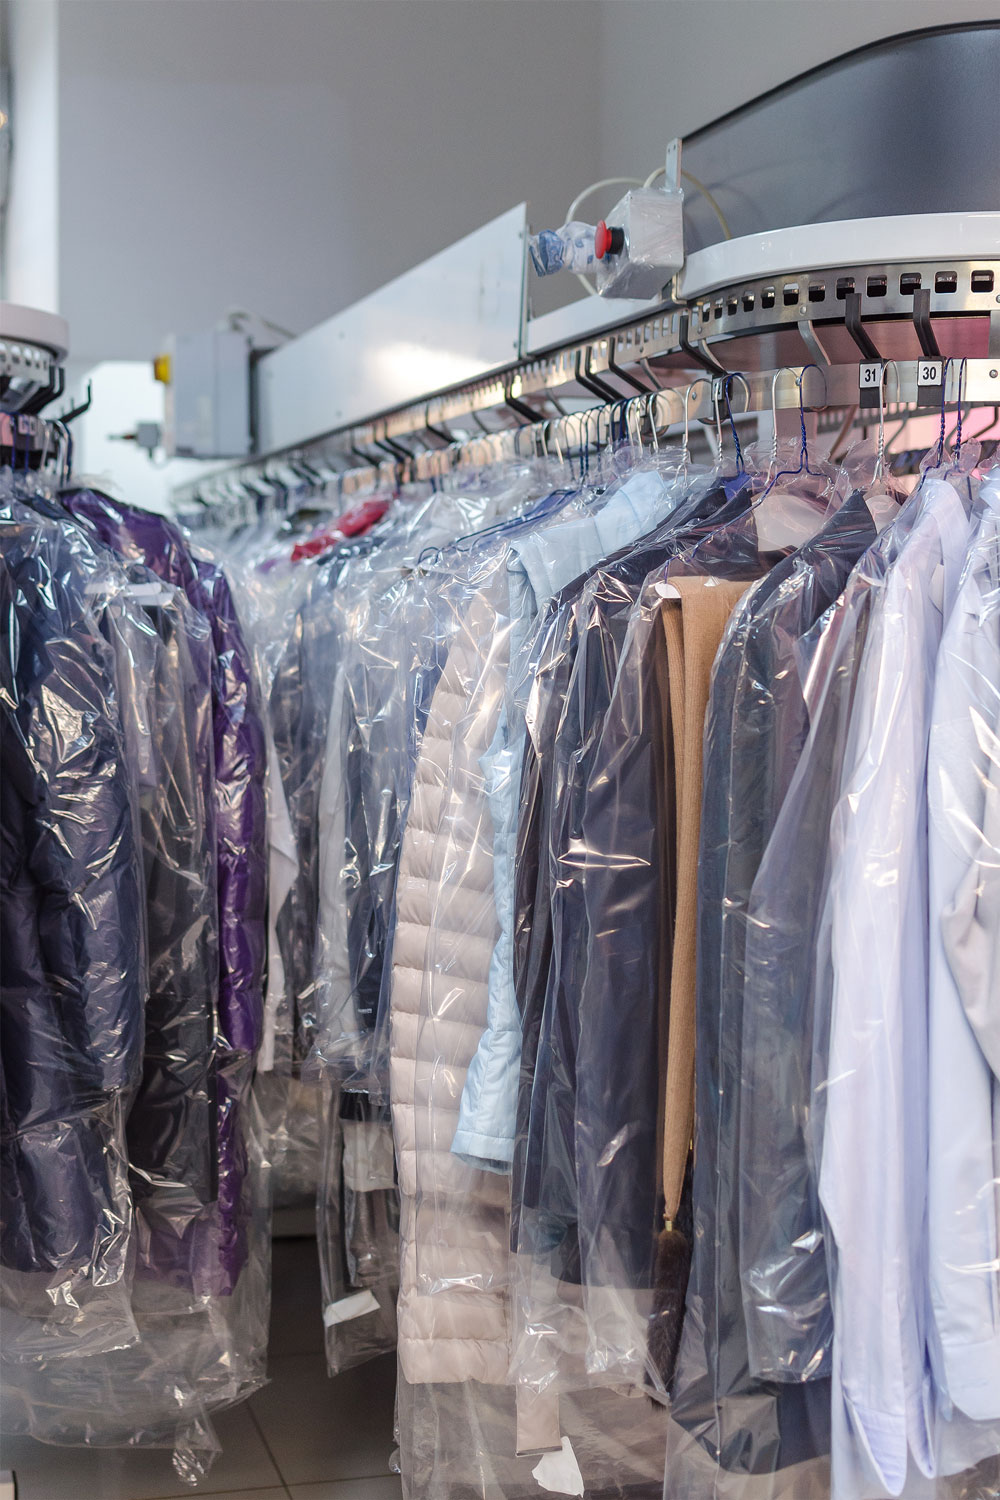 drycleaned clothing